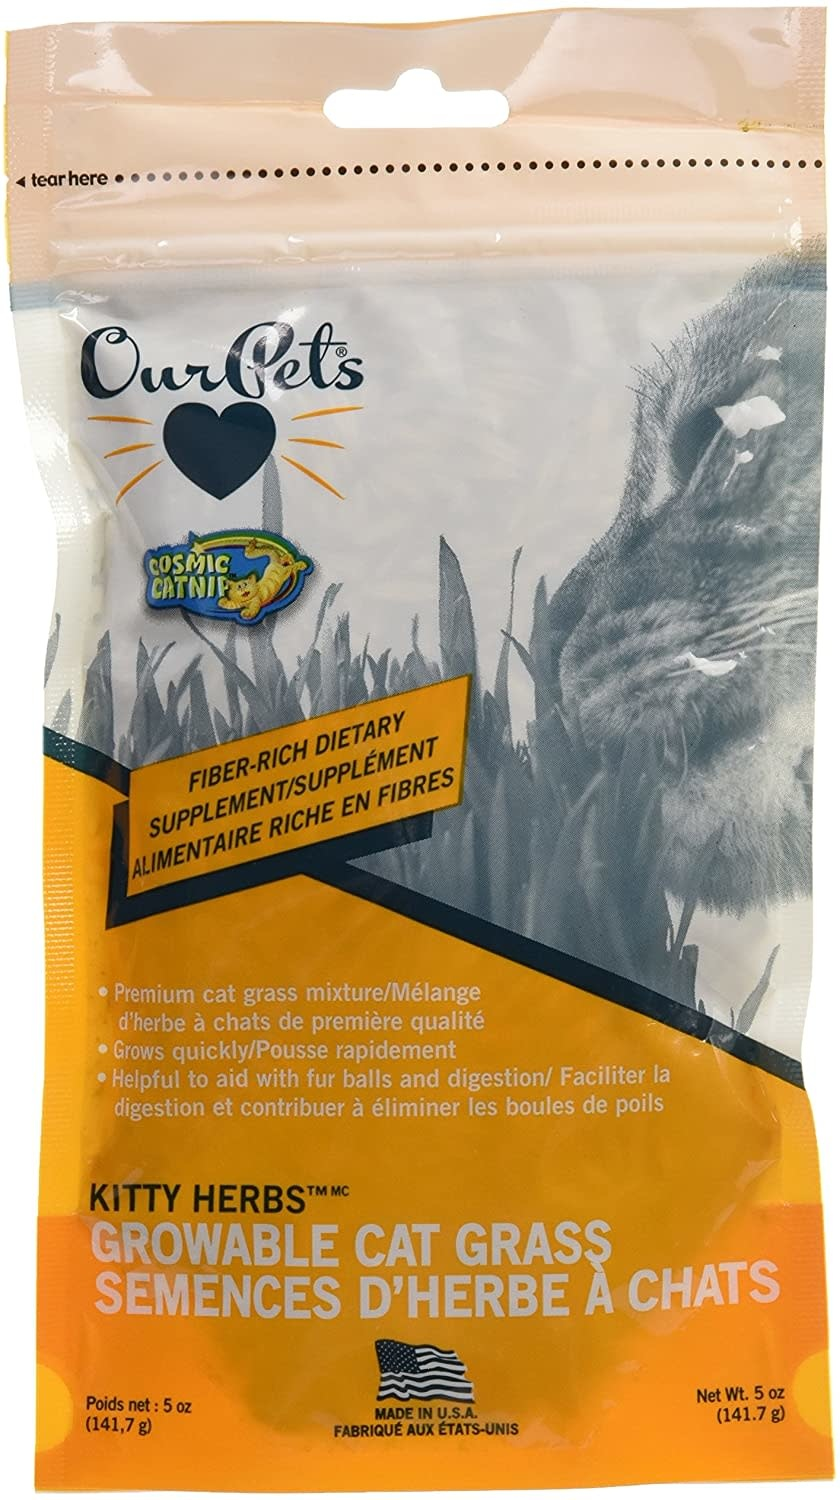 Our Pets Company COSMIC Kitty Herbs 5oz